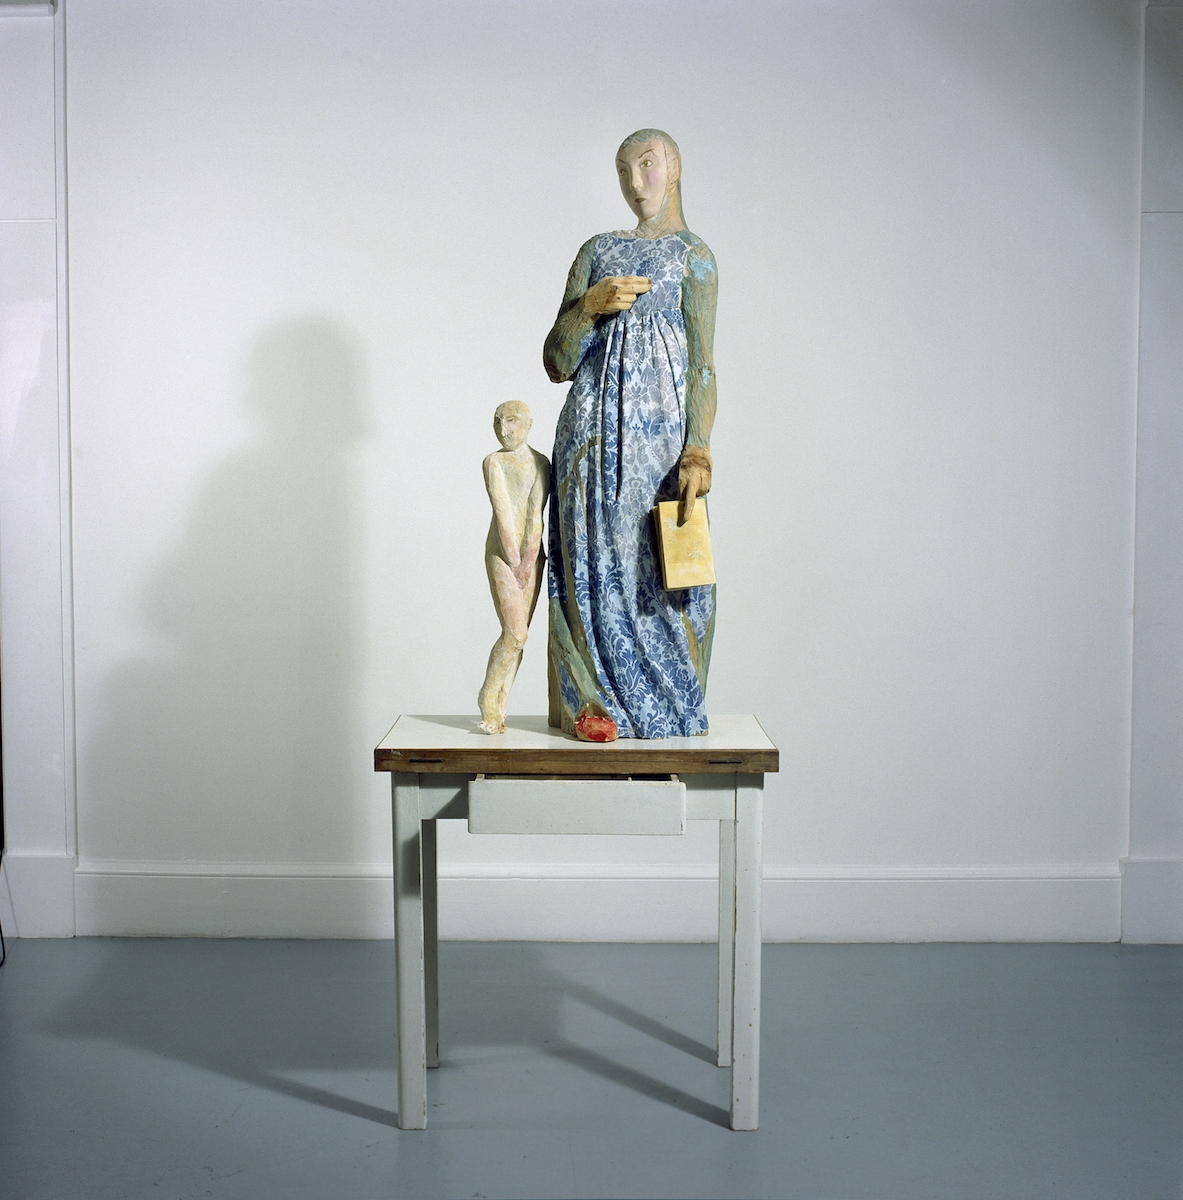 Janet Mullarney, Domestic Gods II,1998, Wood, plaster, wallpaper, mixed media, 210 x 80 x 50 cm, IMMA Collection: Purchase, 1998